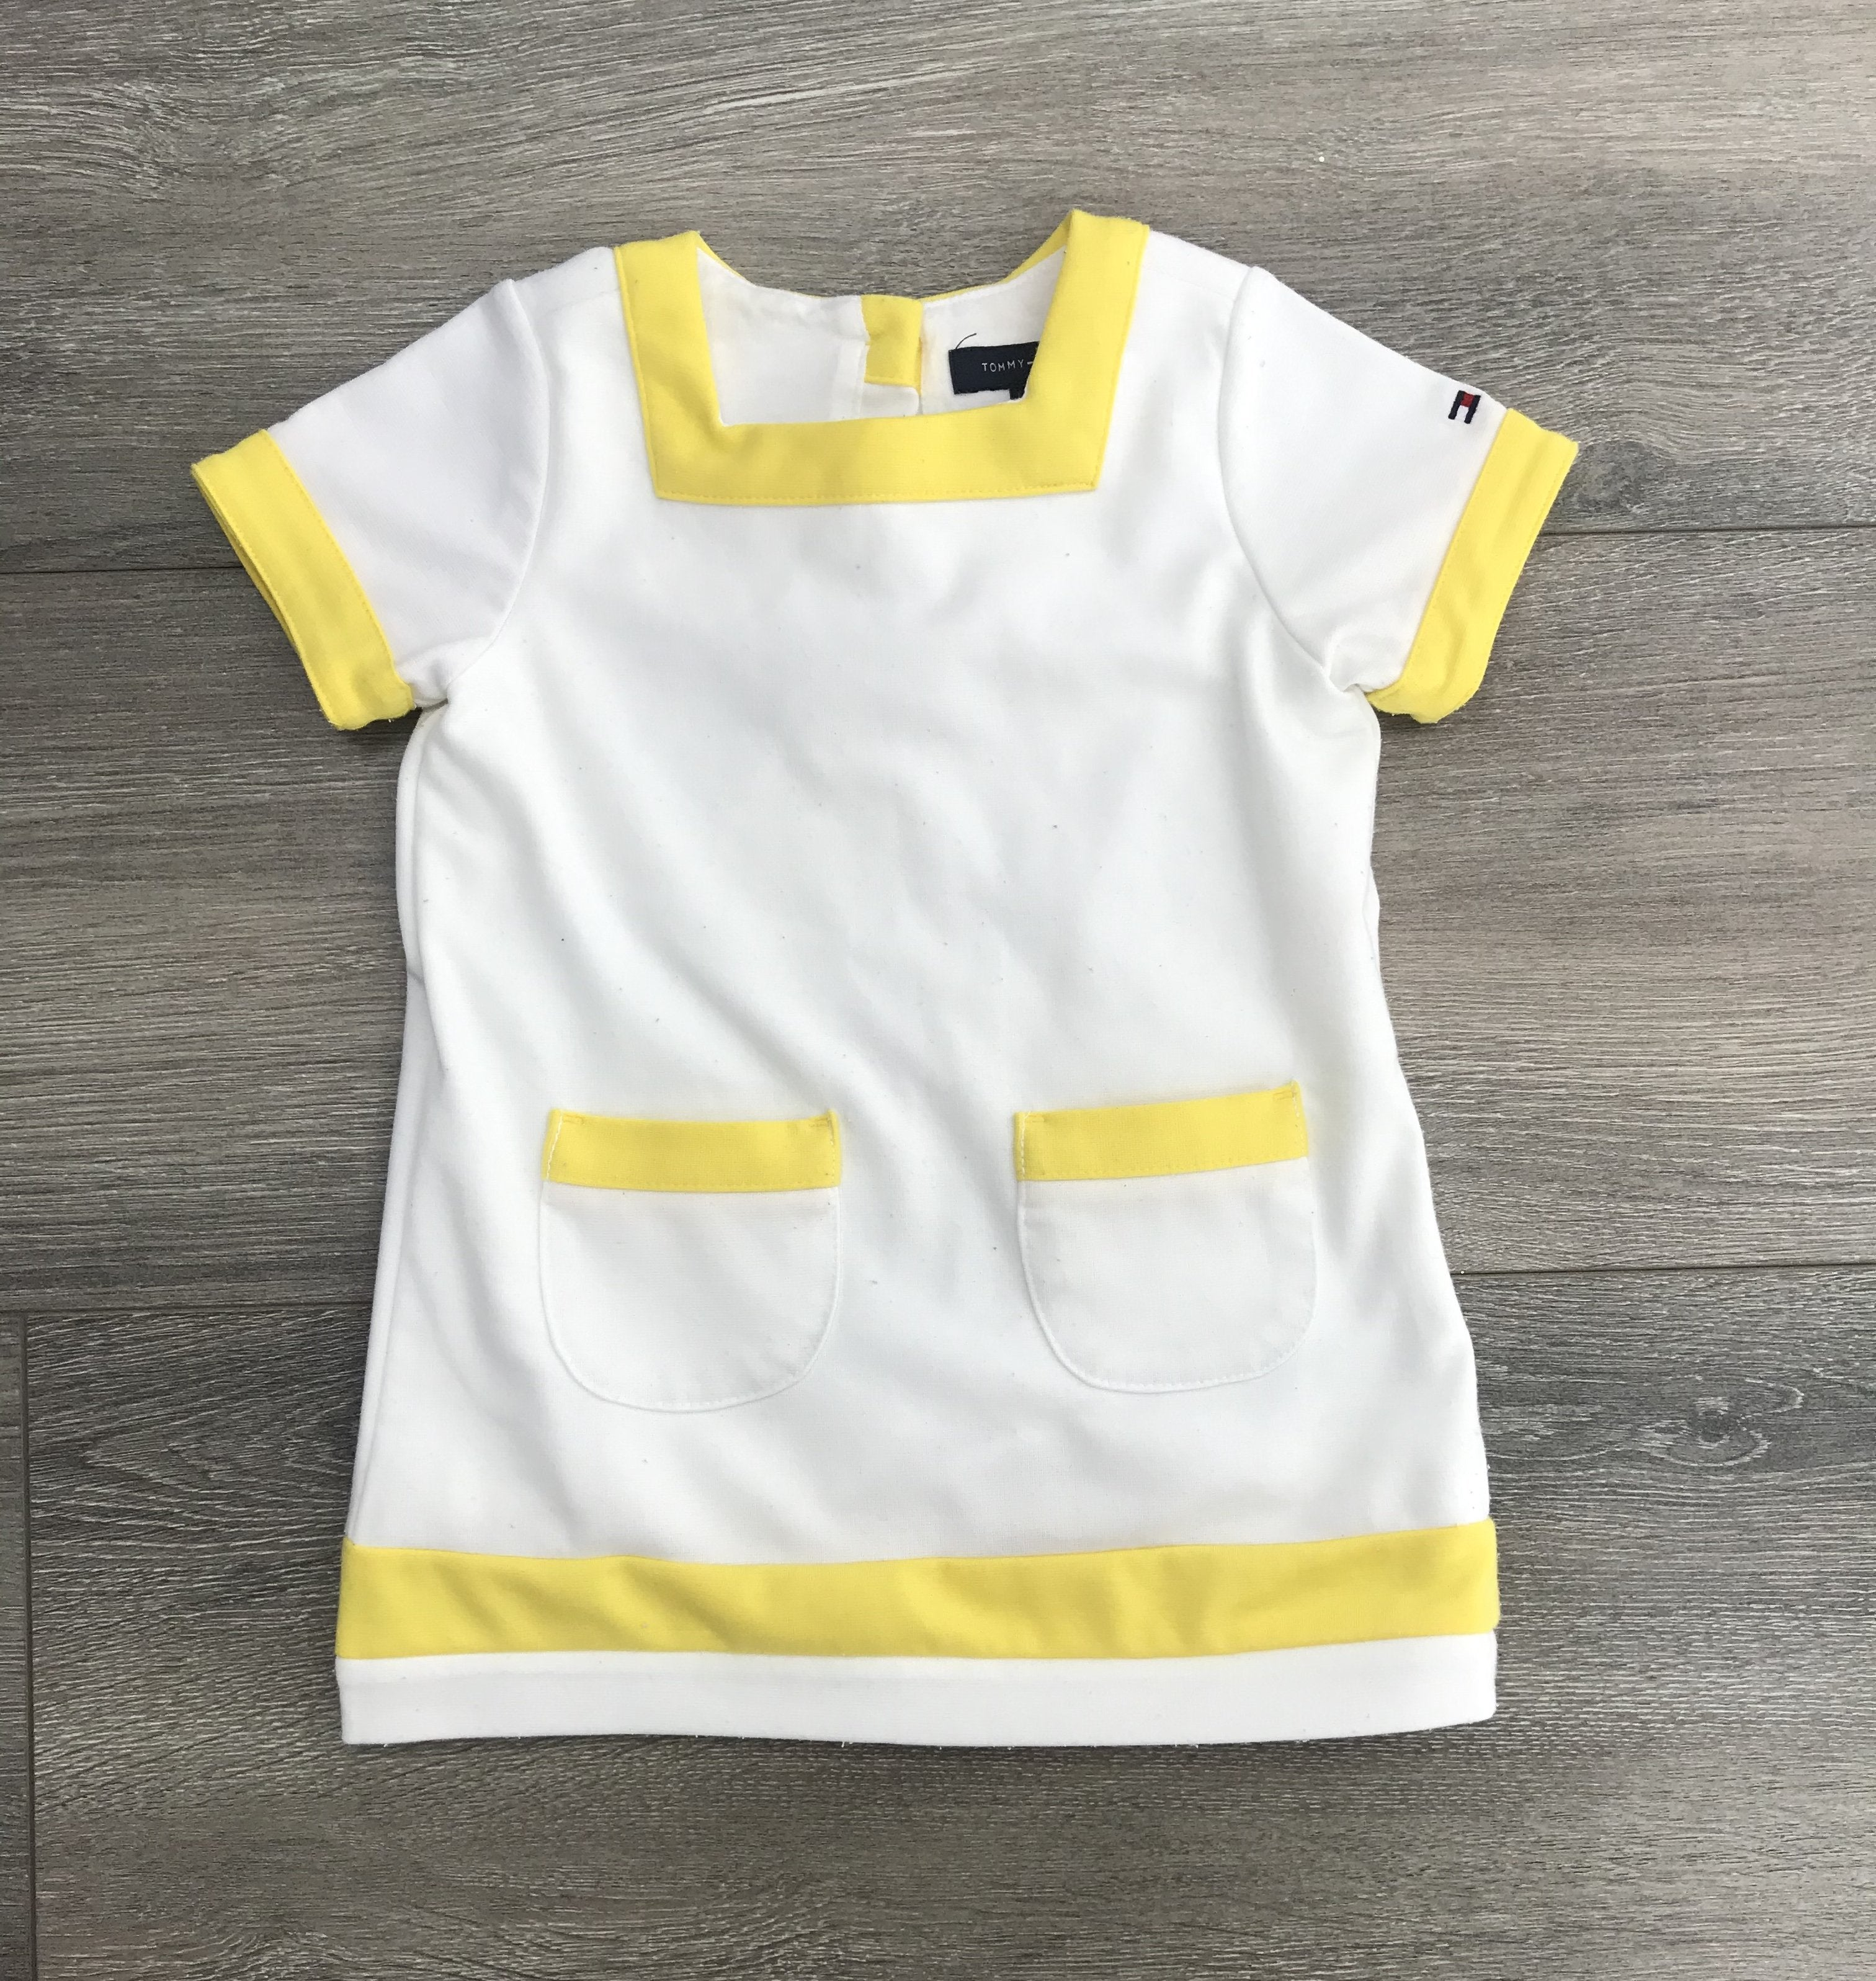 Tommy Hilfiger 12 Months Baby Dress, Simple and Cute design. With two pockets that the baby probably won't use., White, Shell: 95% Polyester, 5% Elastane; Lining: 100% Cotton, 12 months baby clothes, baby girl dress, second hand baby girl clothes, 12 month baby clothes